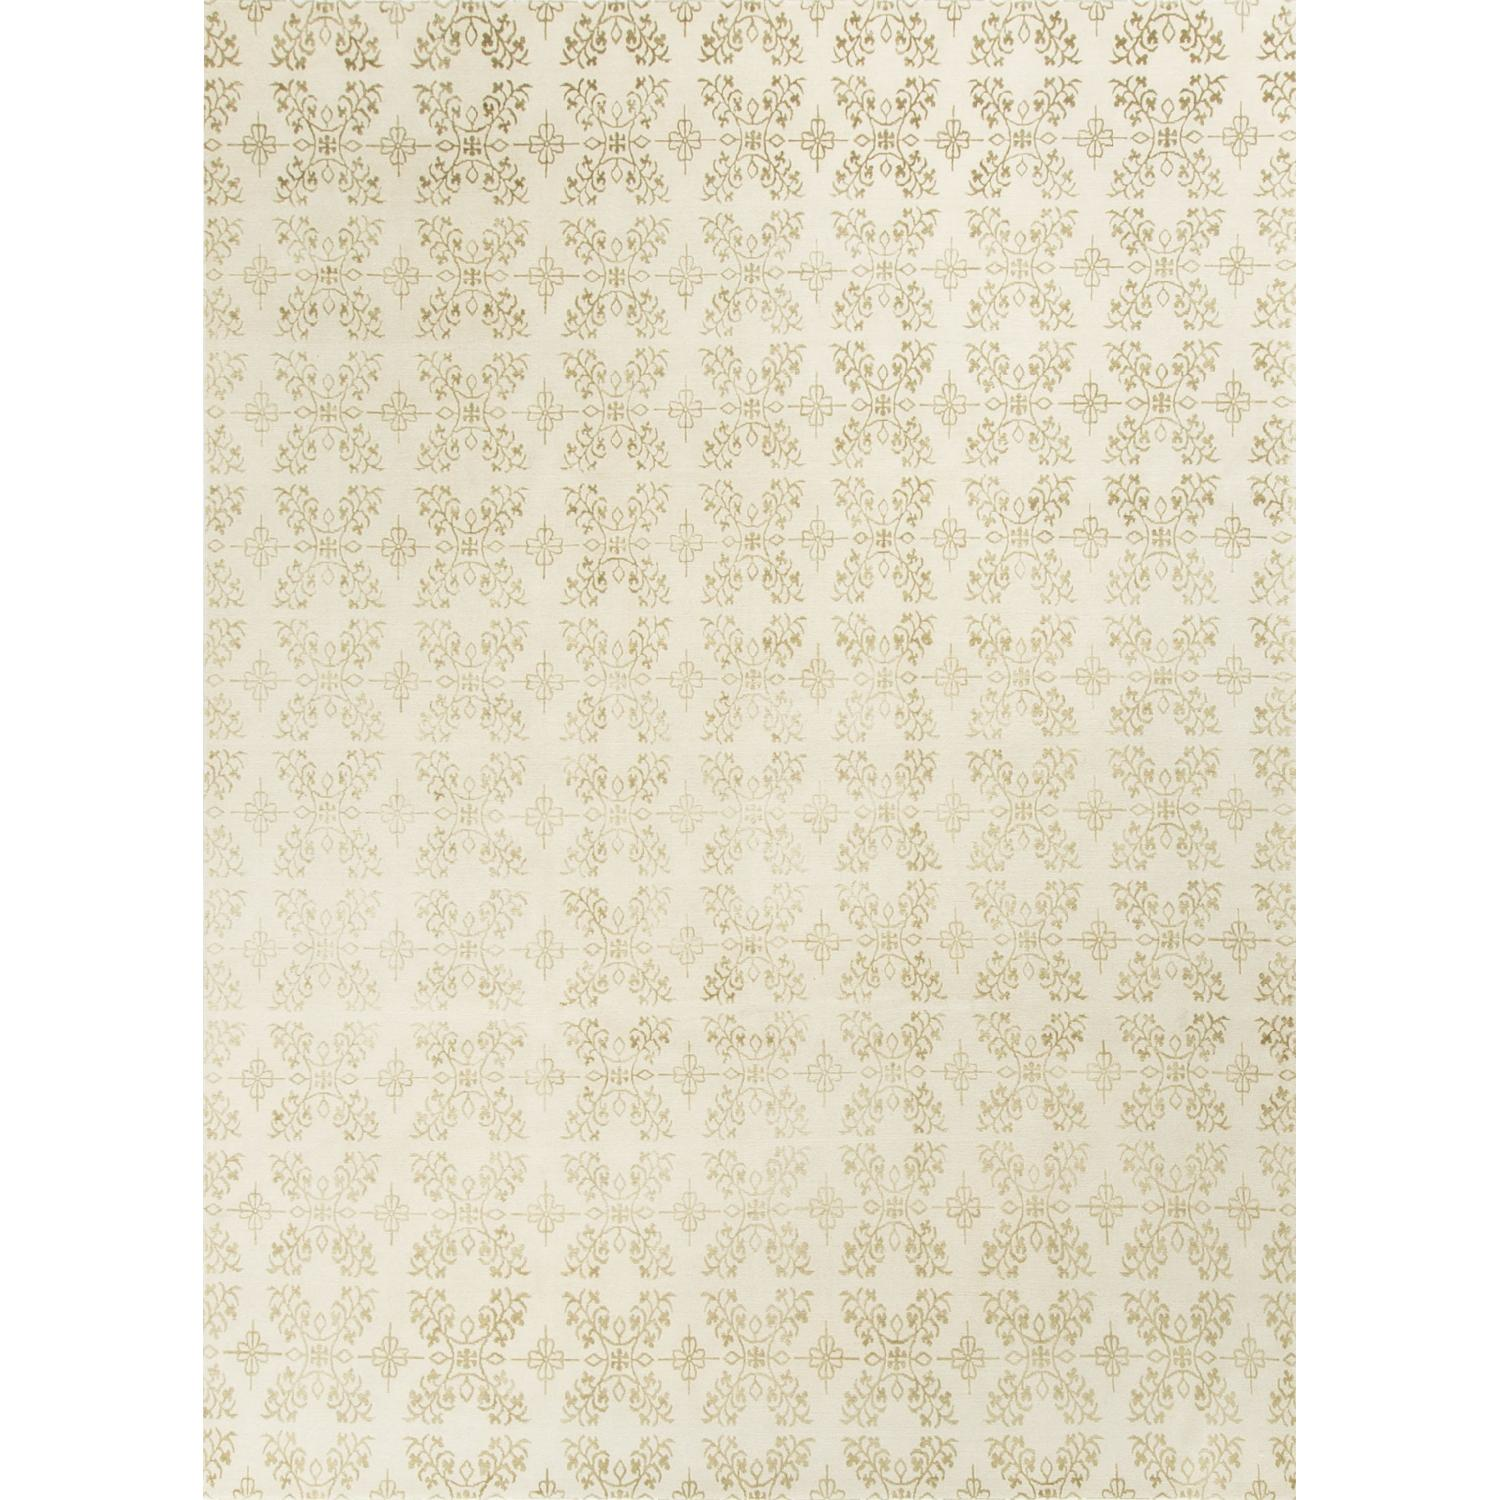 Modern Contemporary Hand Knotted Wool Rug in Ivory - image-0